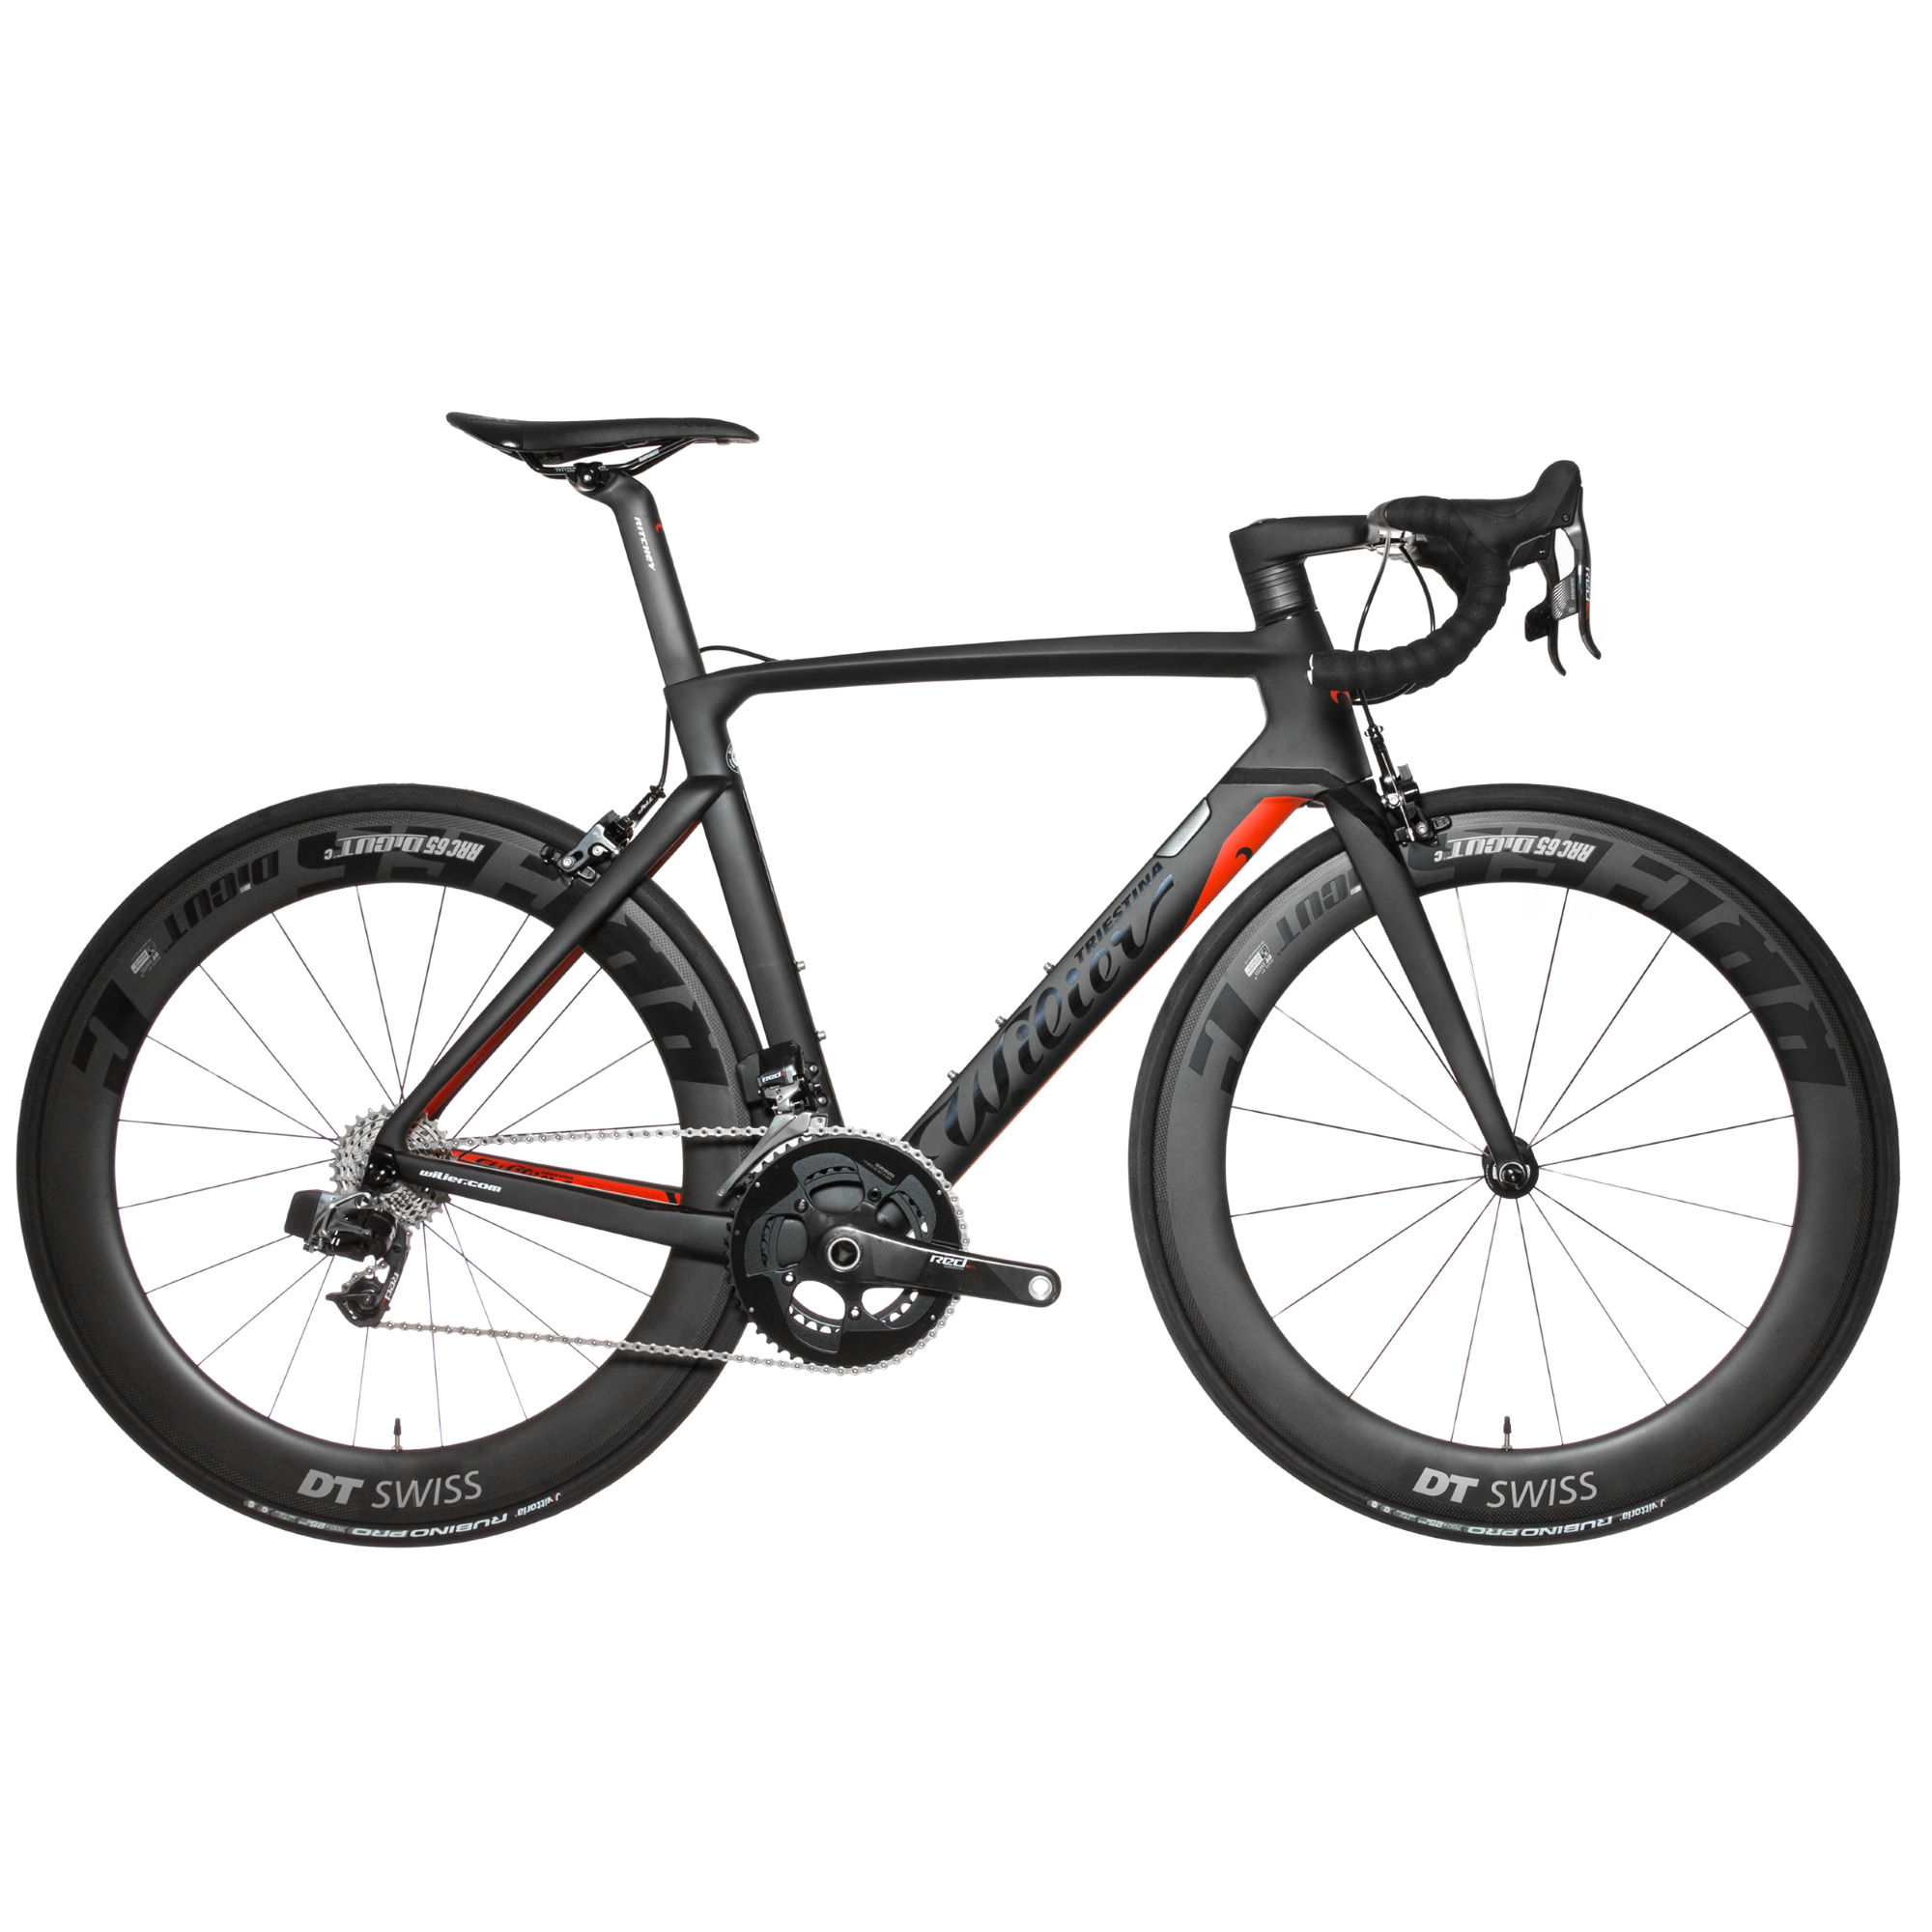 Bike Black Friday Deals 2018 Best Seller Bicycle Review